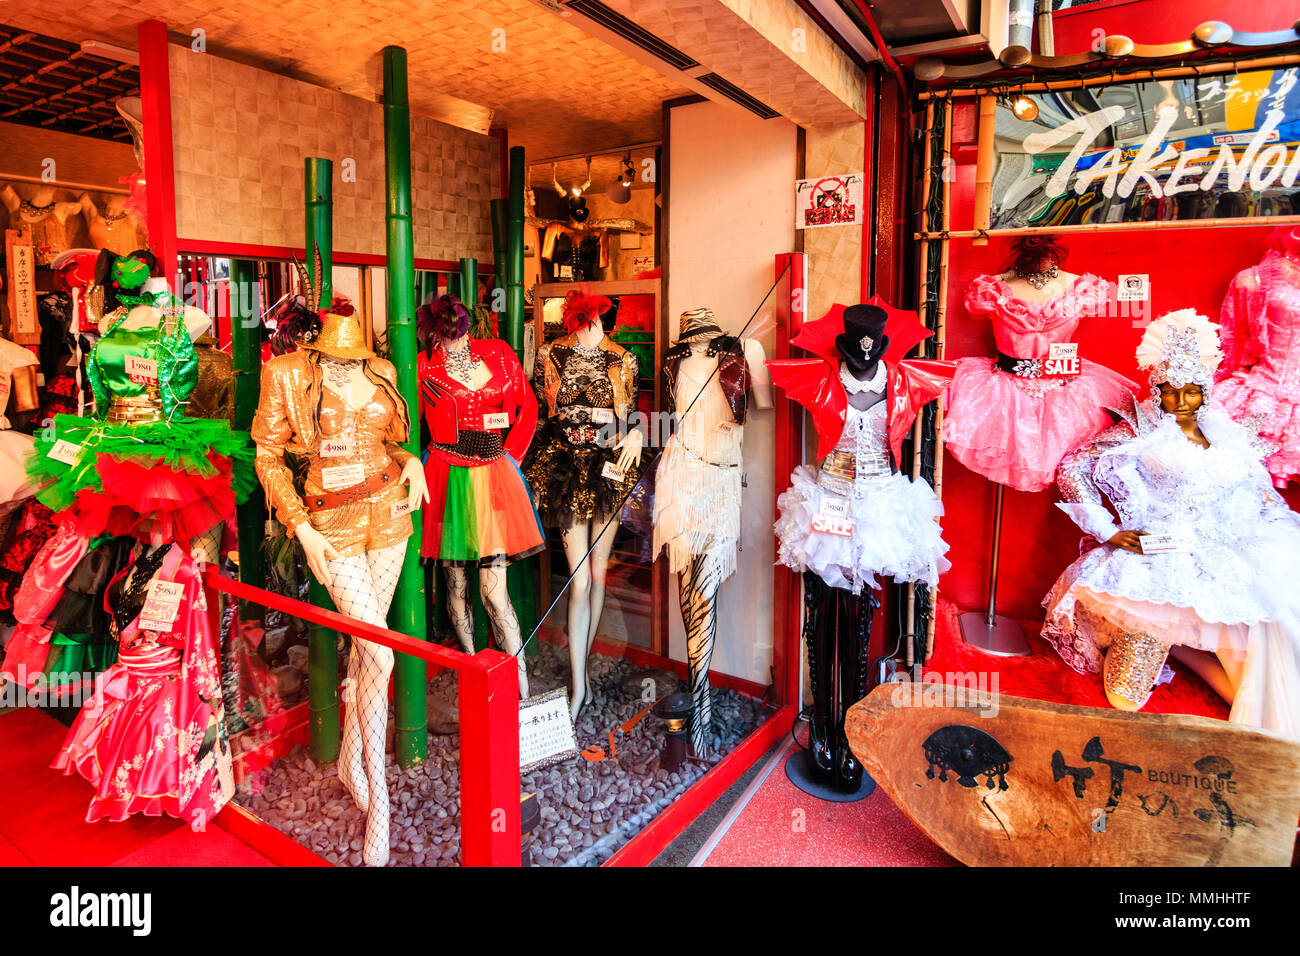 Tokyo, Harajuku, Takeshita street. Famous fashion store, Boutique Takenoko. Mannequins leading to entrance, dressed in various garish gaudy outfits. - Stock Image